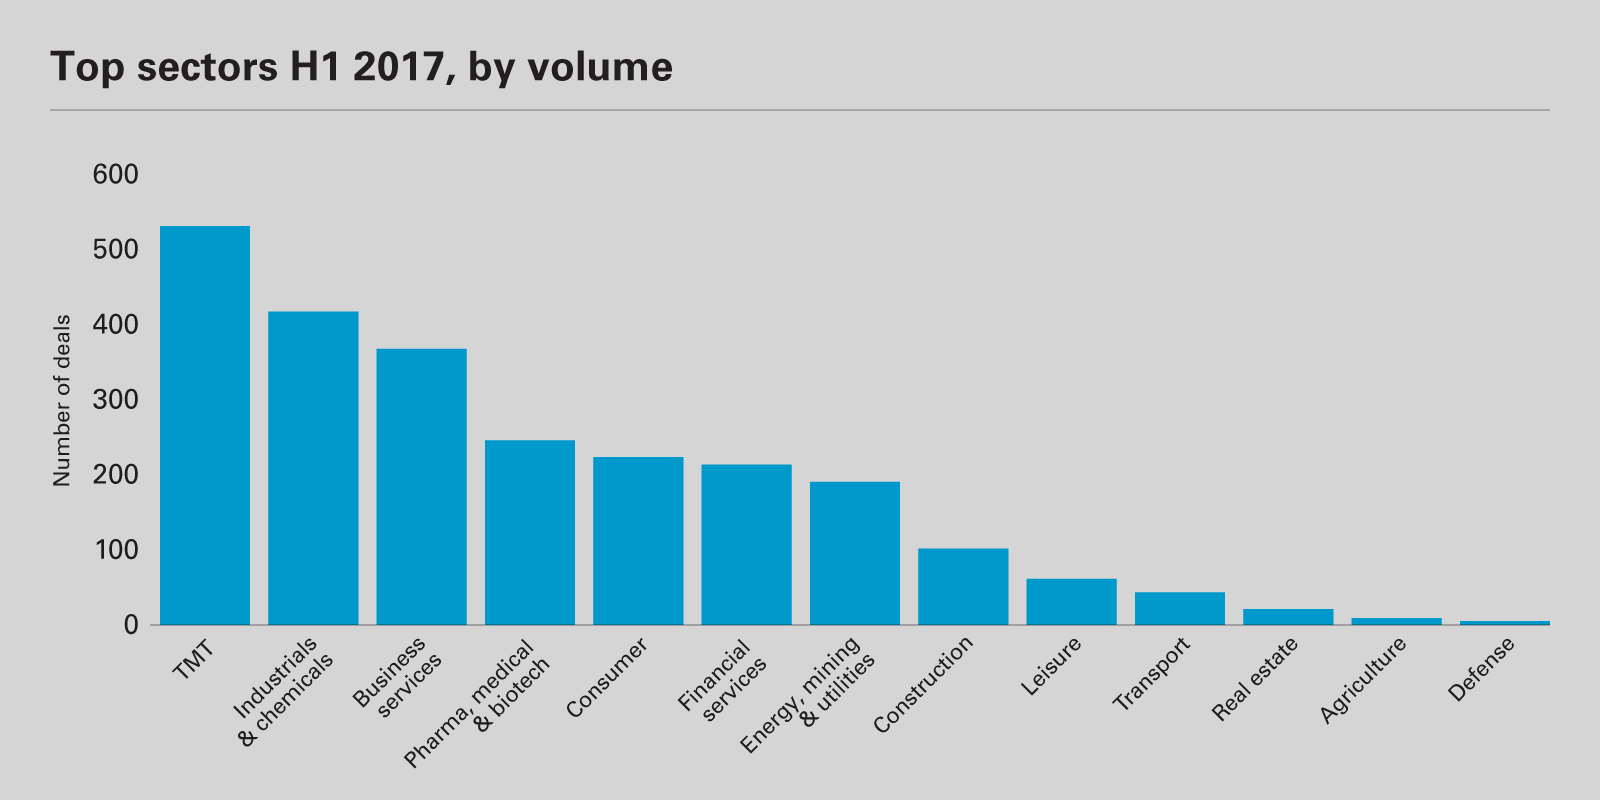 Top sectors H1 2017, by volume